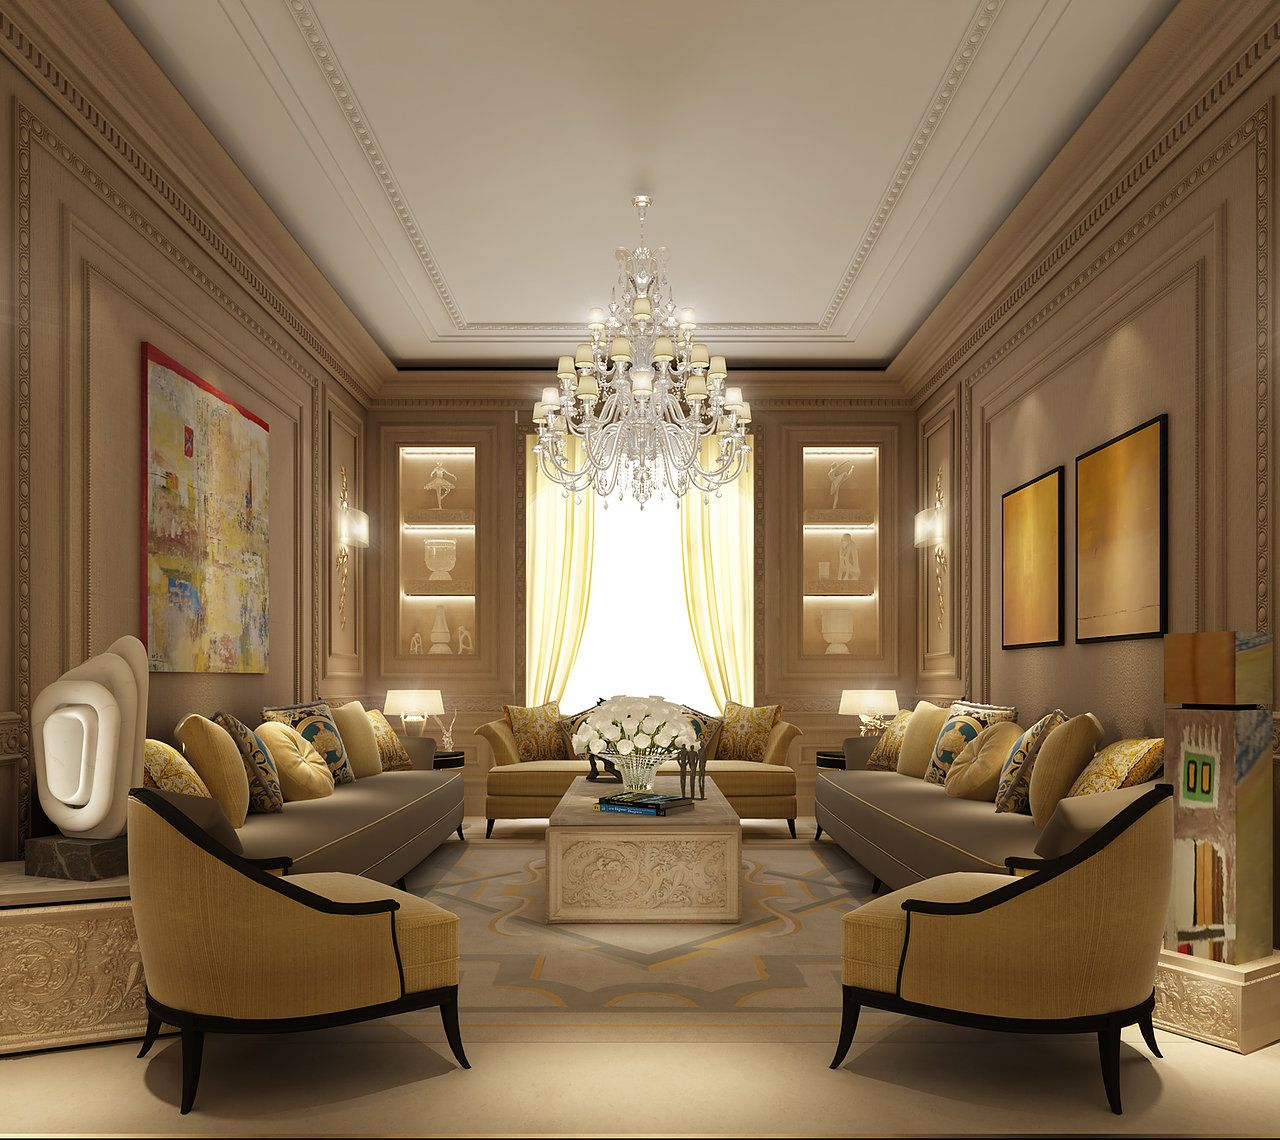 Luxury Living Room Interior Design Ideas: Luxury Interior Design Dubai...IONS One The Leading